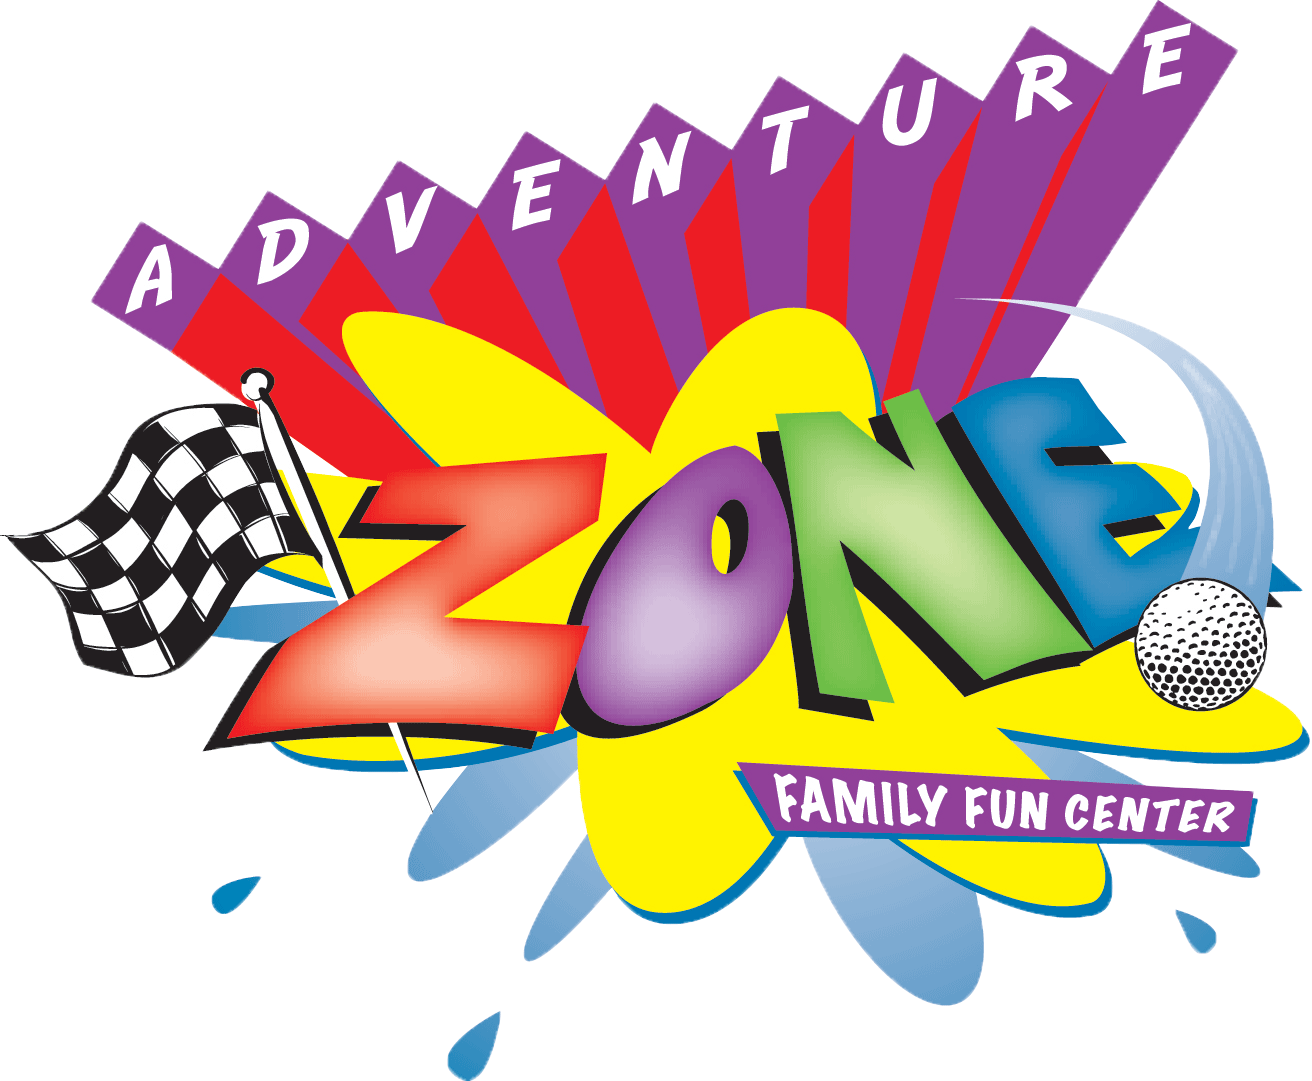 Adventure Zone Family Fun Center